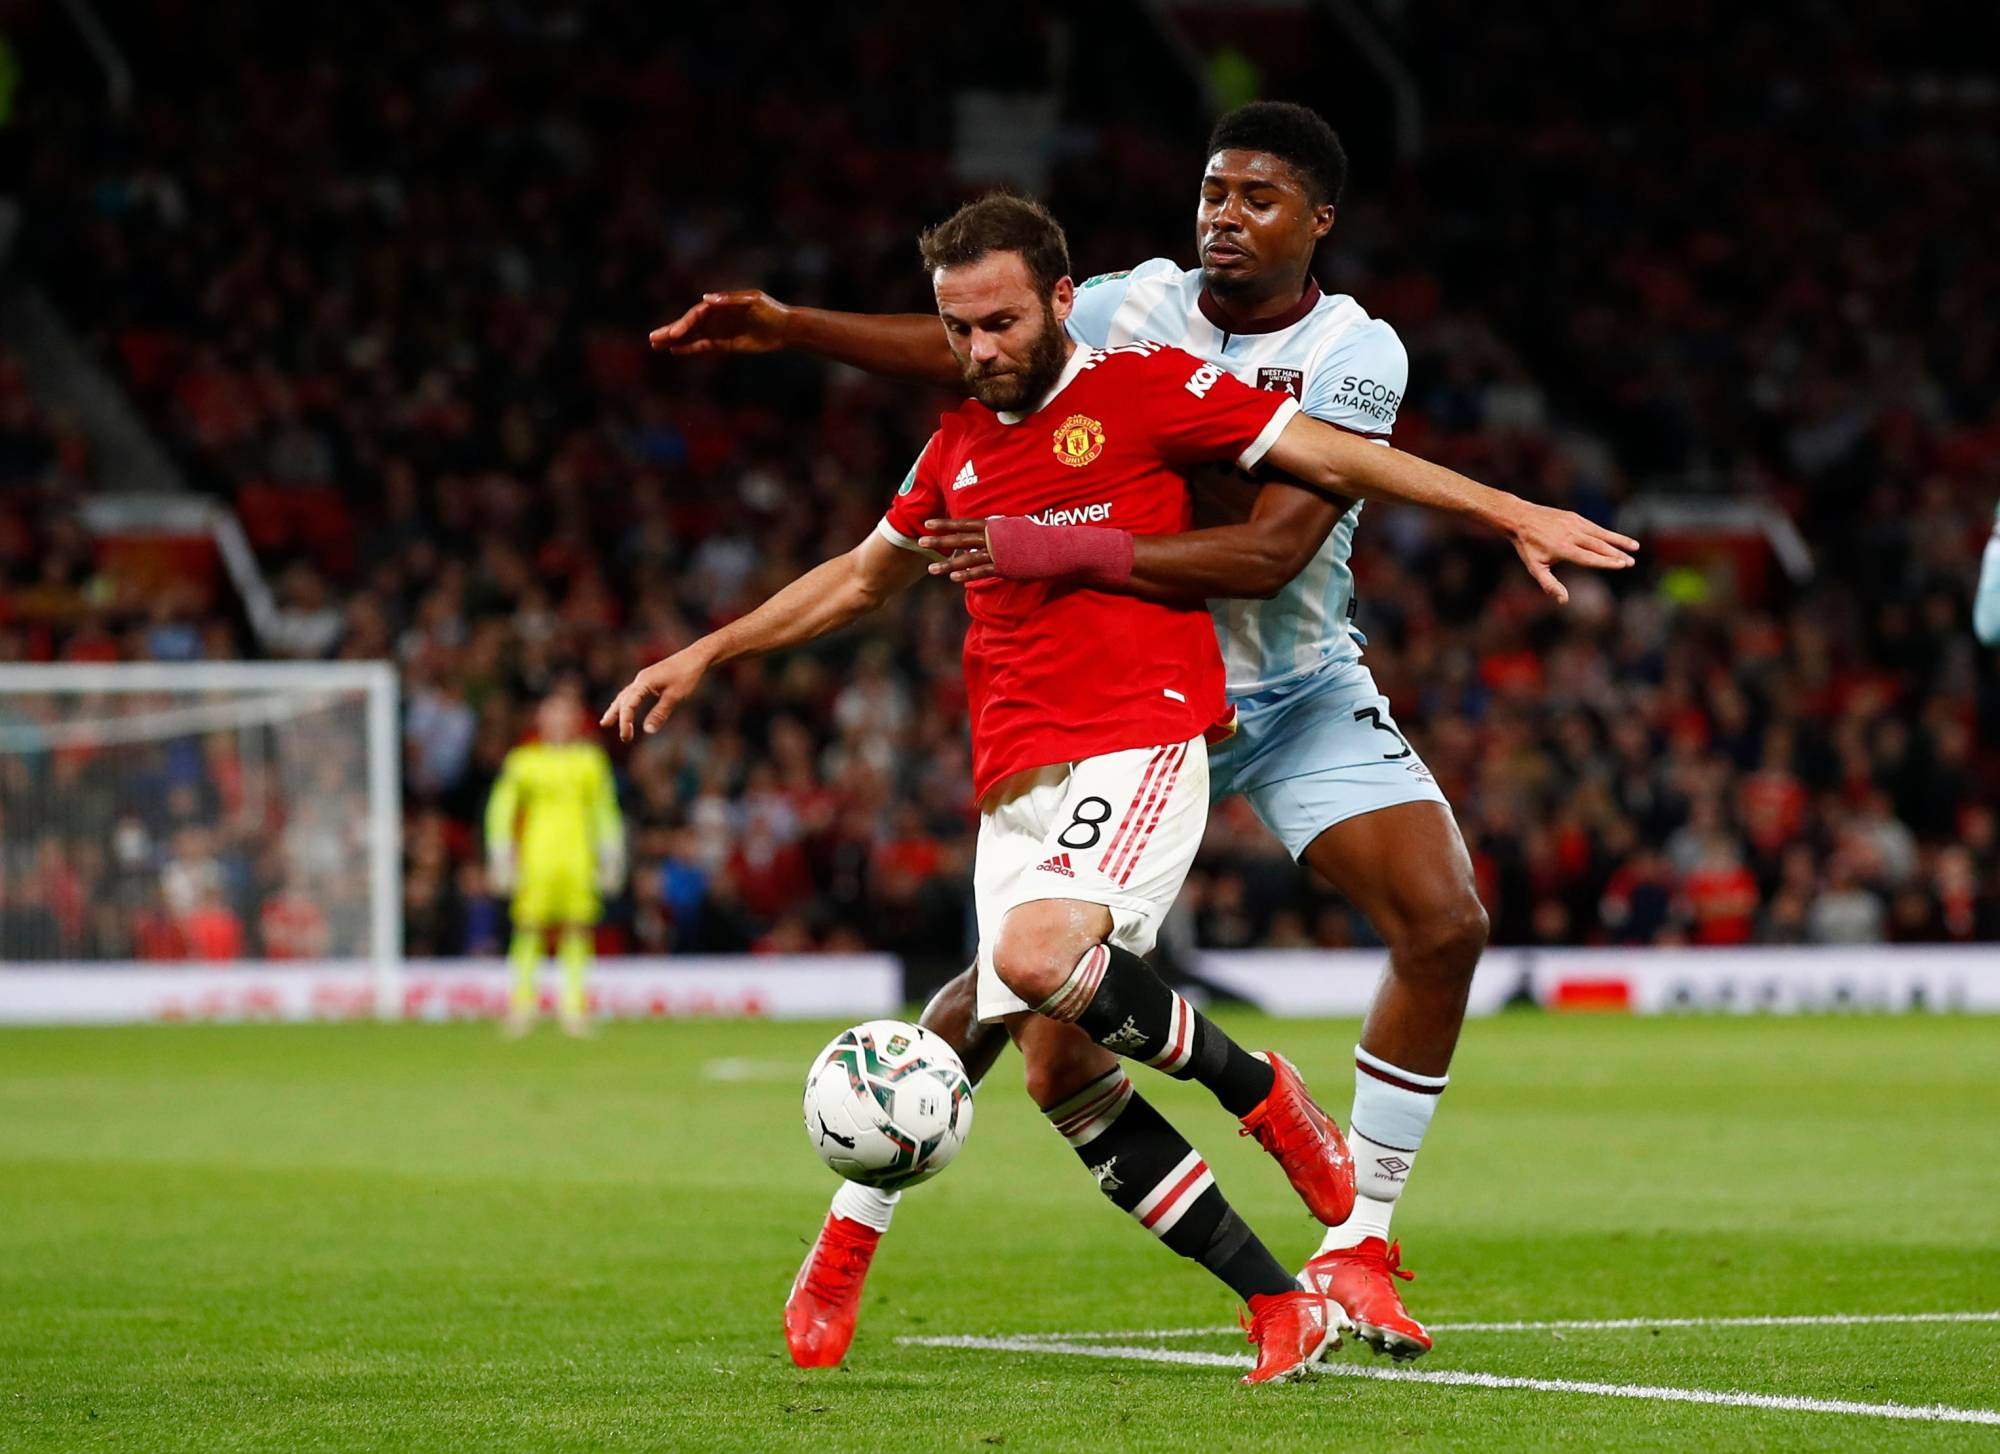 Manchester United's Juan Mata (front) and West Ham's Ben Johnson vie for the ball during their League Cup match in Manchester, England, on Wednesday | REUTERS